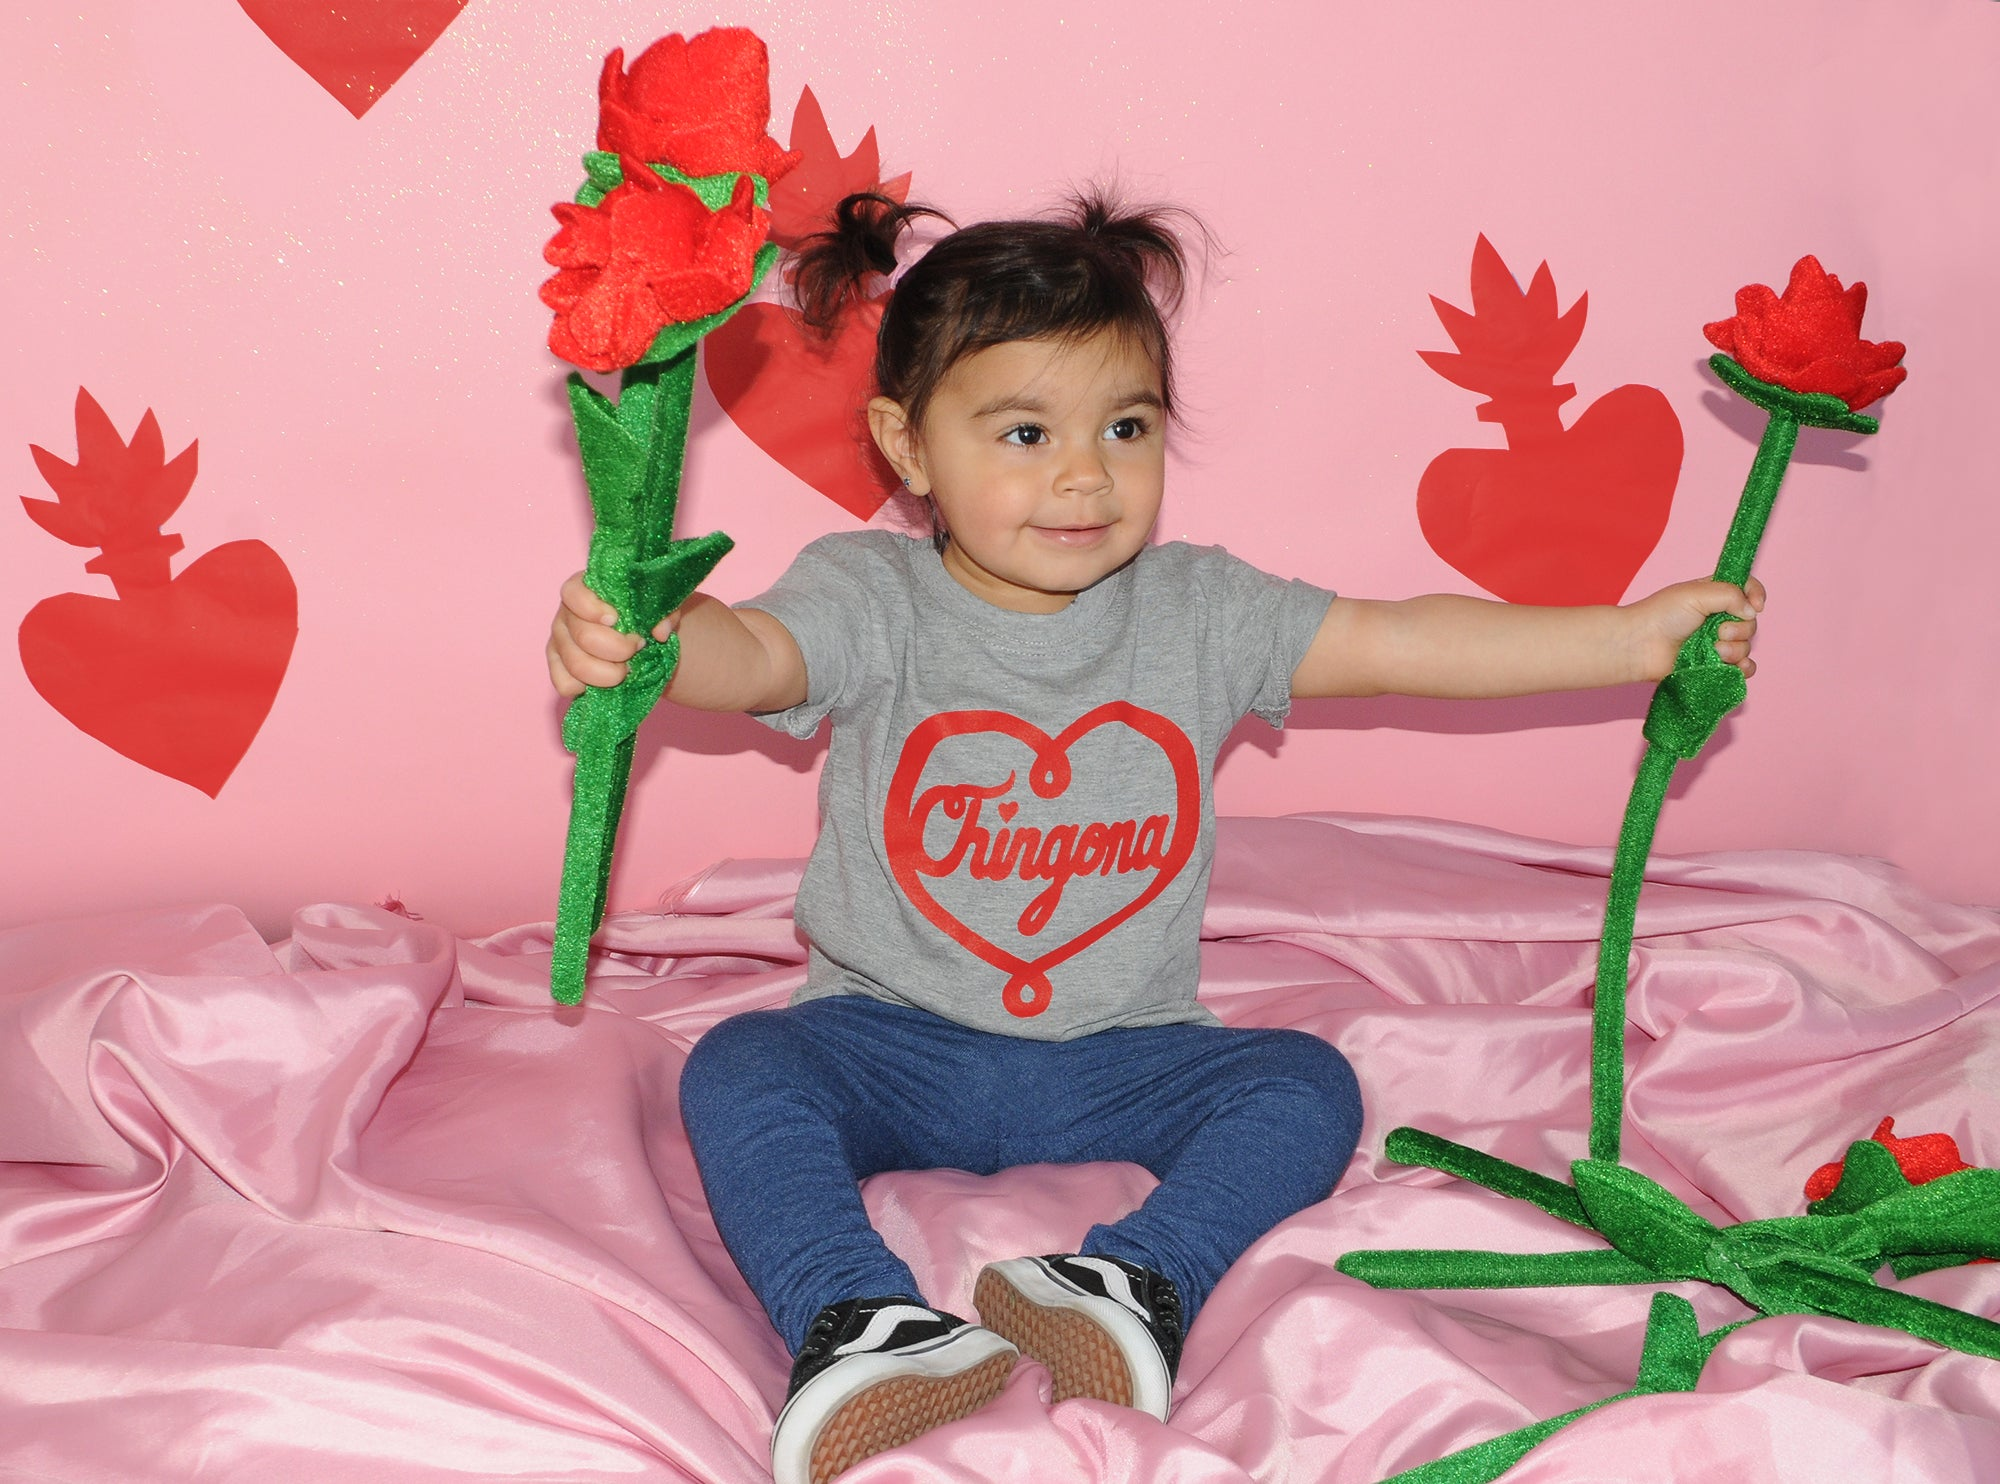 Chingona Heart Kids Tee